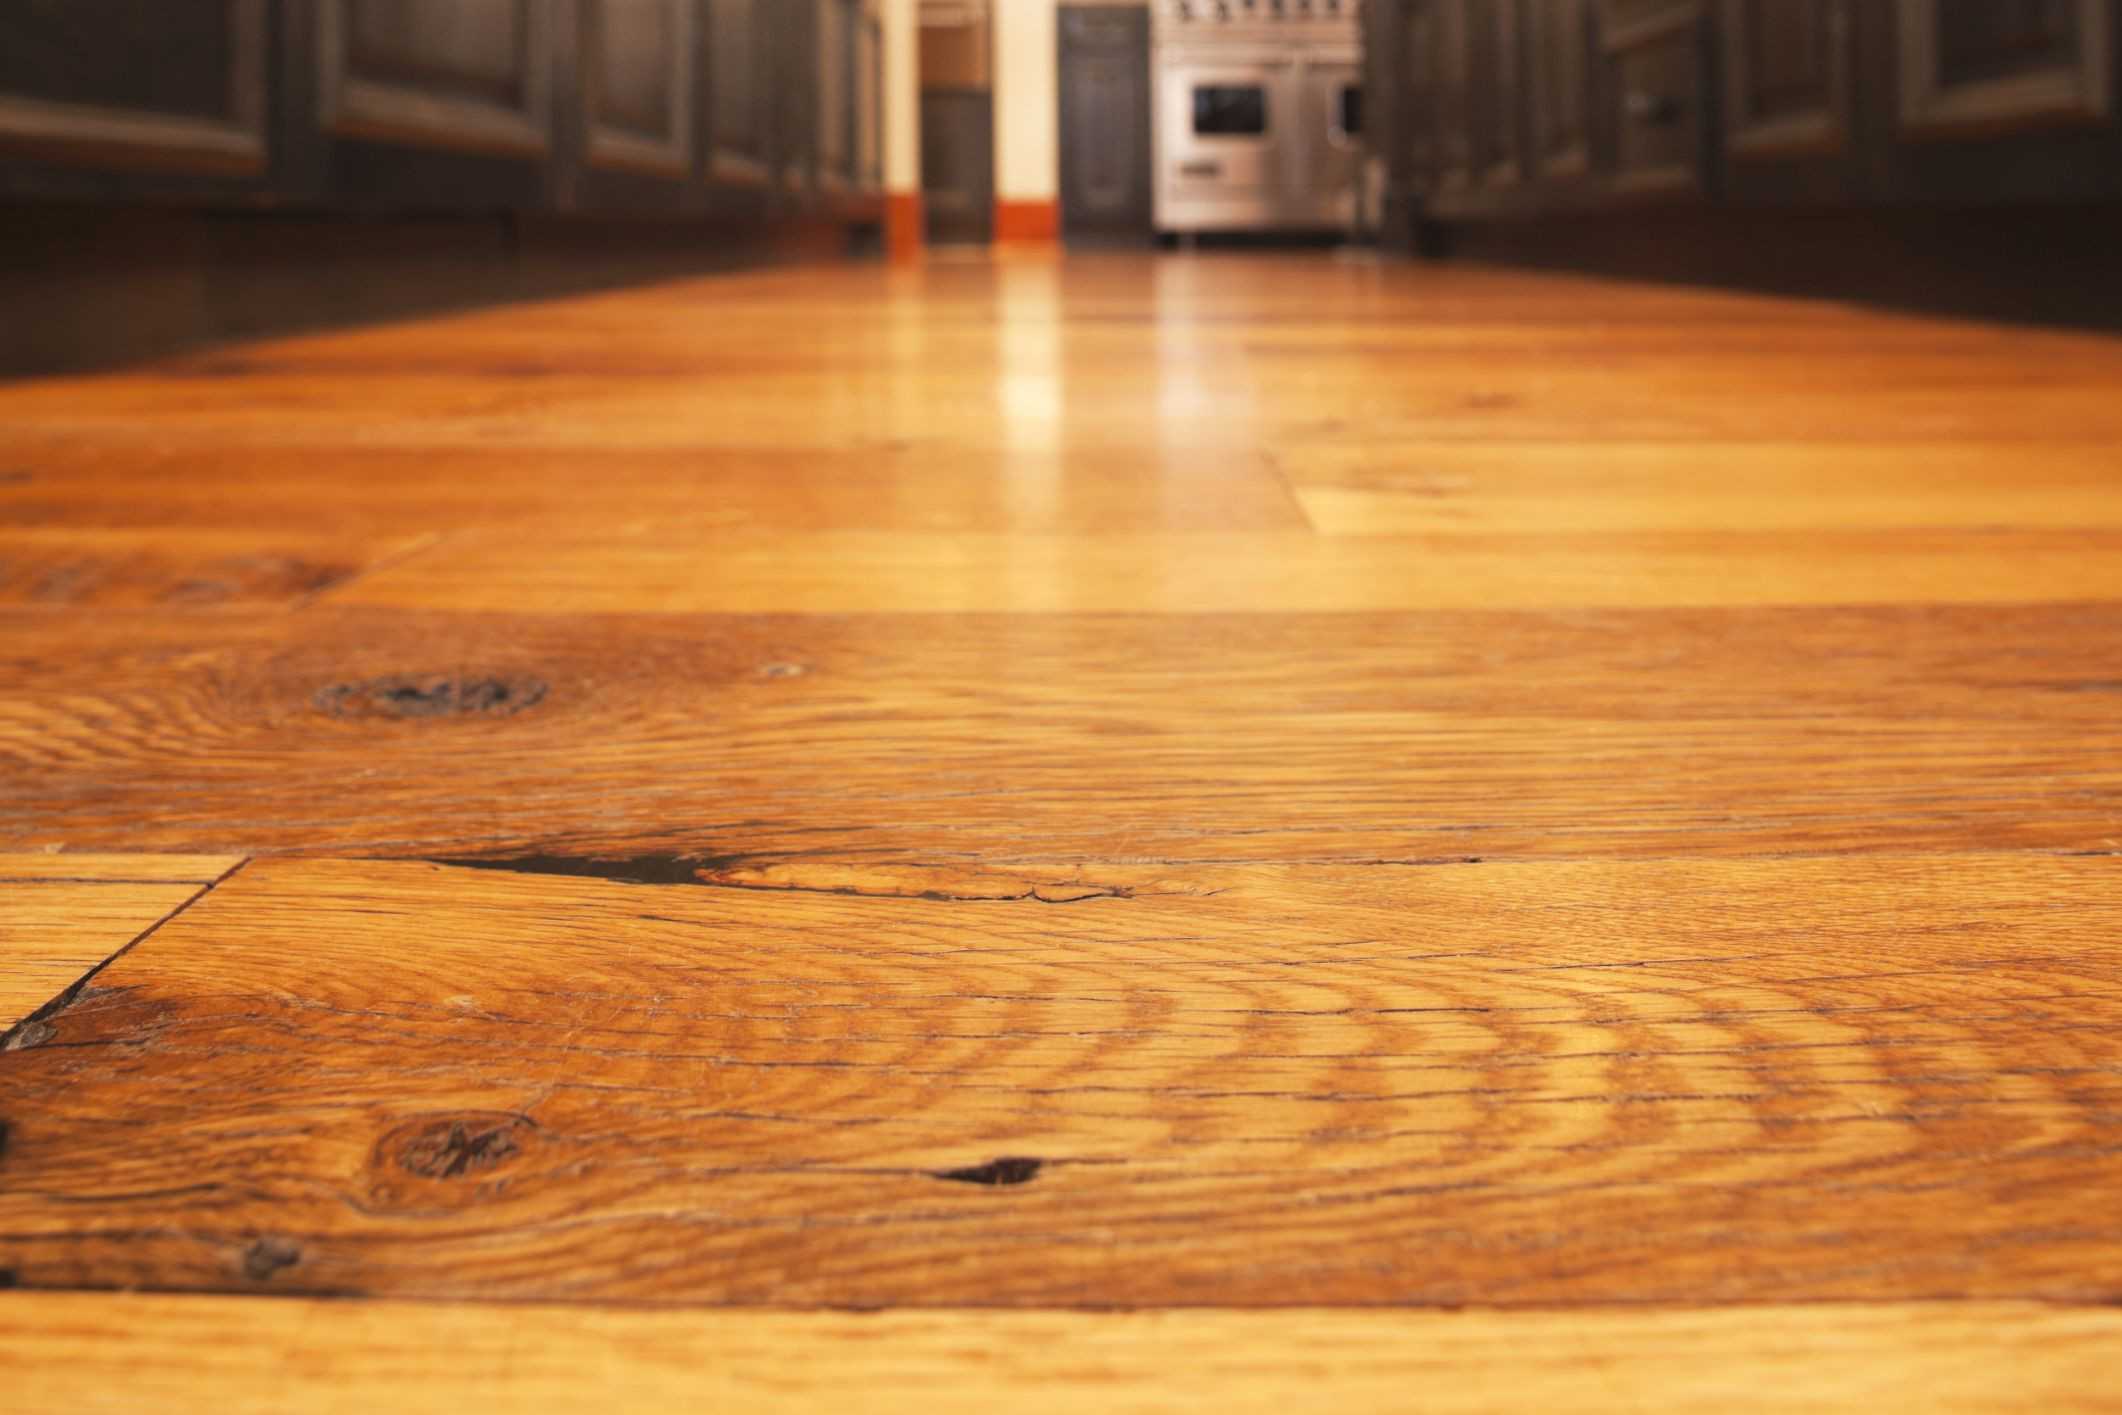 laminate vs prefinished hardwood flooring of why a microbevel is on your flooring intended for wood floor closeup microbevel 56a4a13f5f9b58b7d0d7e5f4